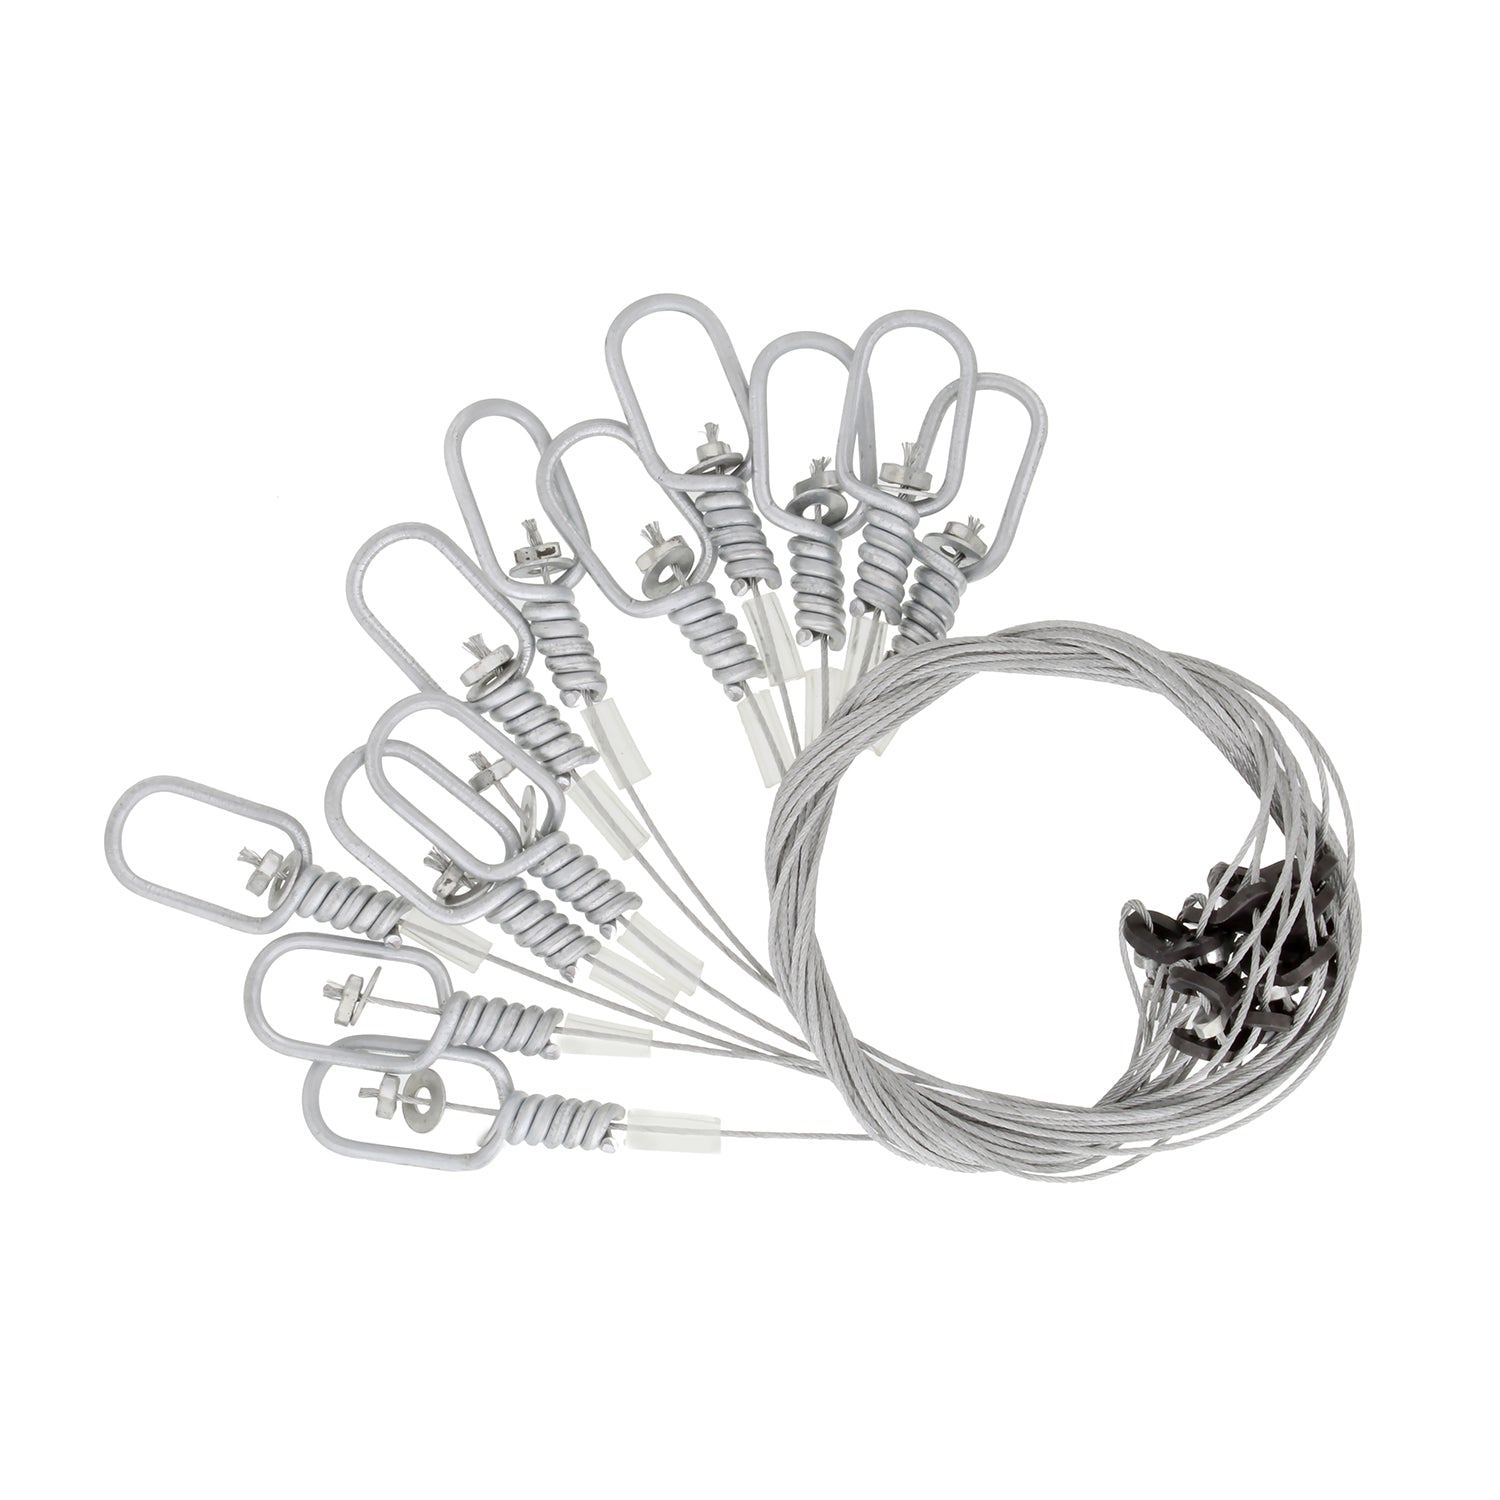 Snare Wire Snare Trap 12-Pack � Rabbit Snare Traps � Small Game Traps